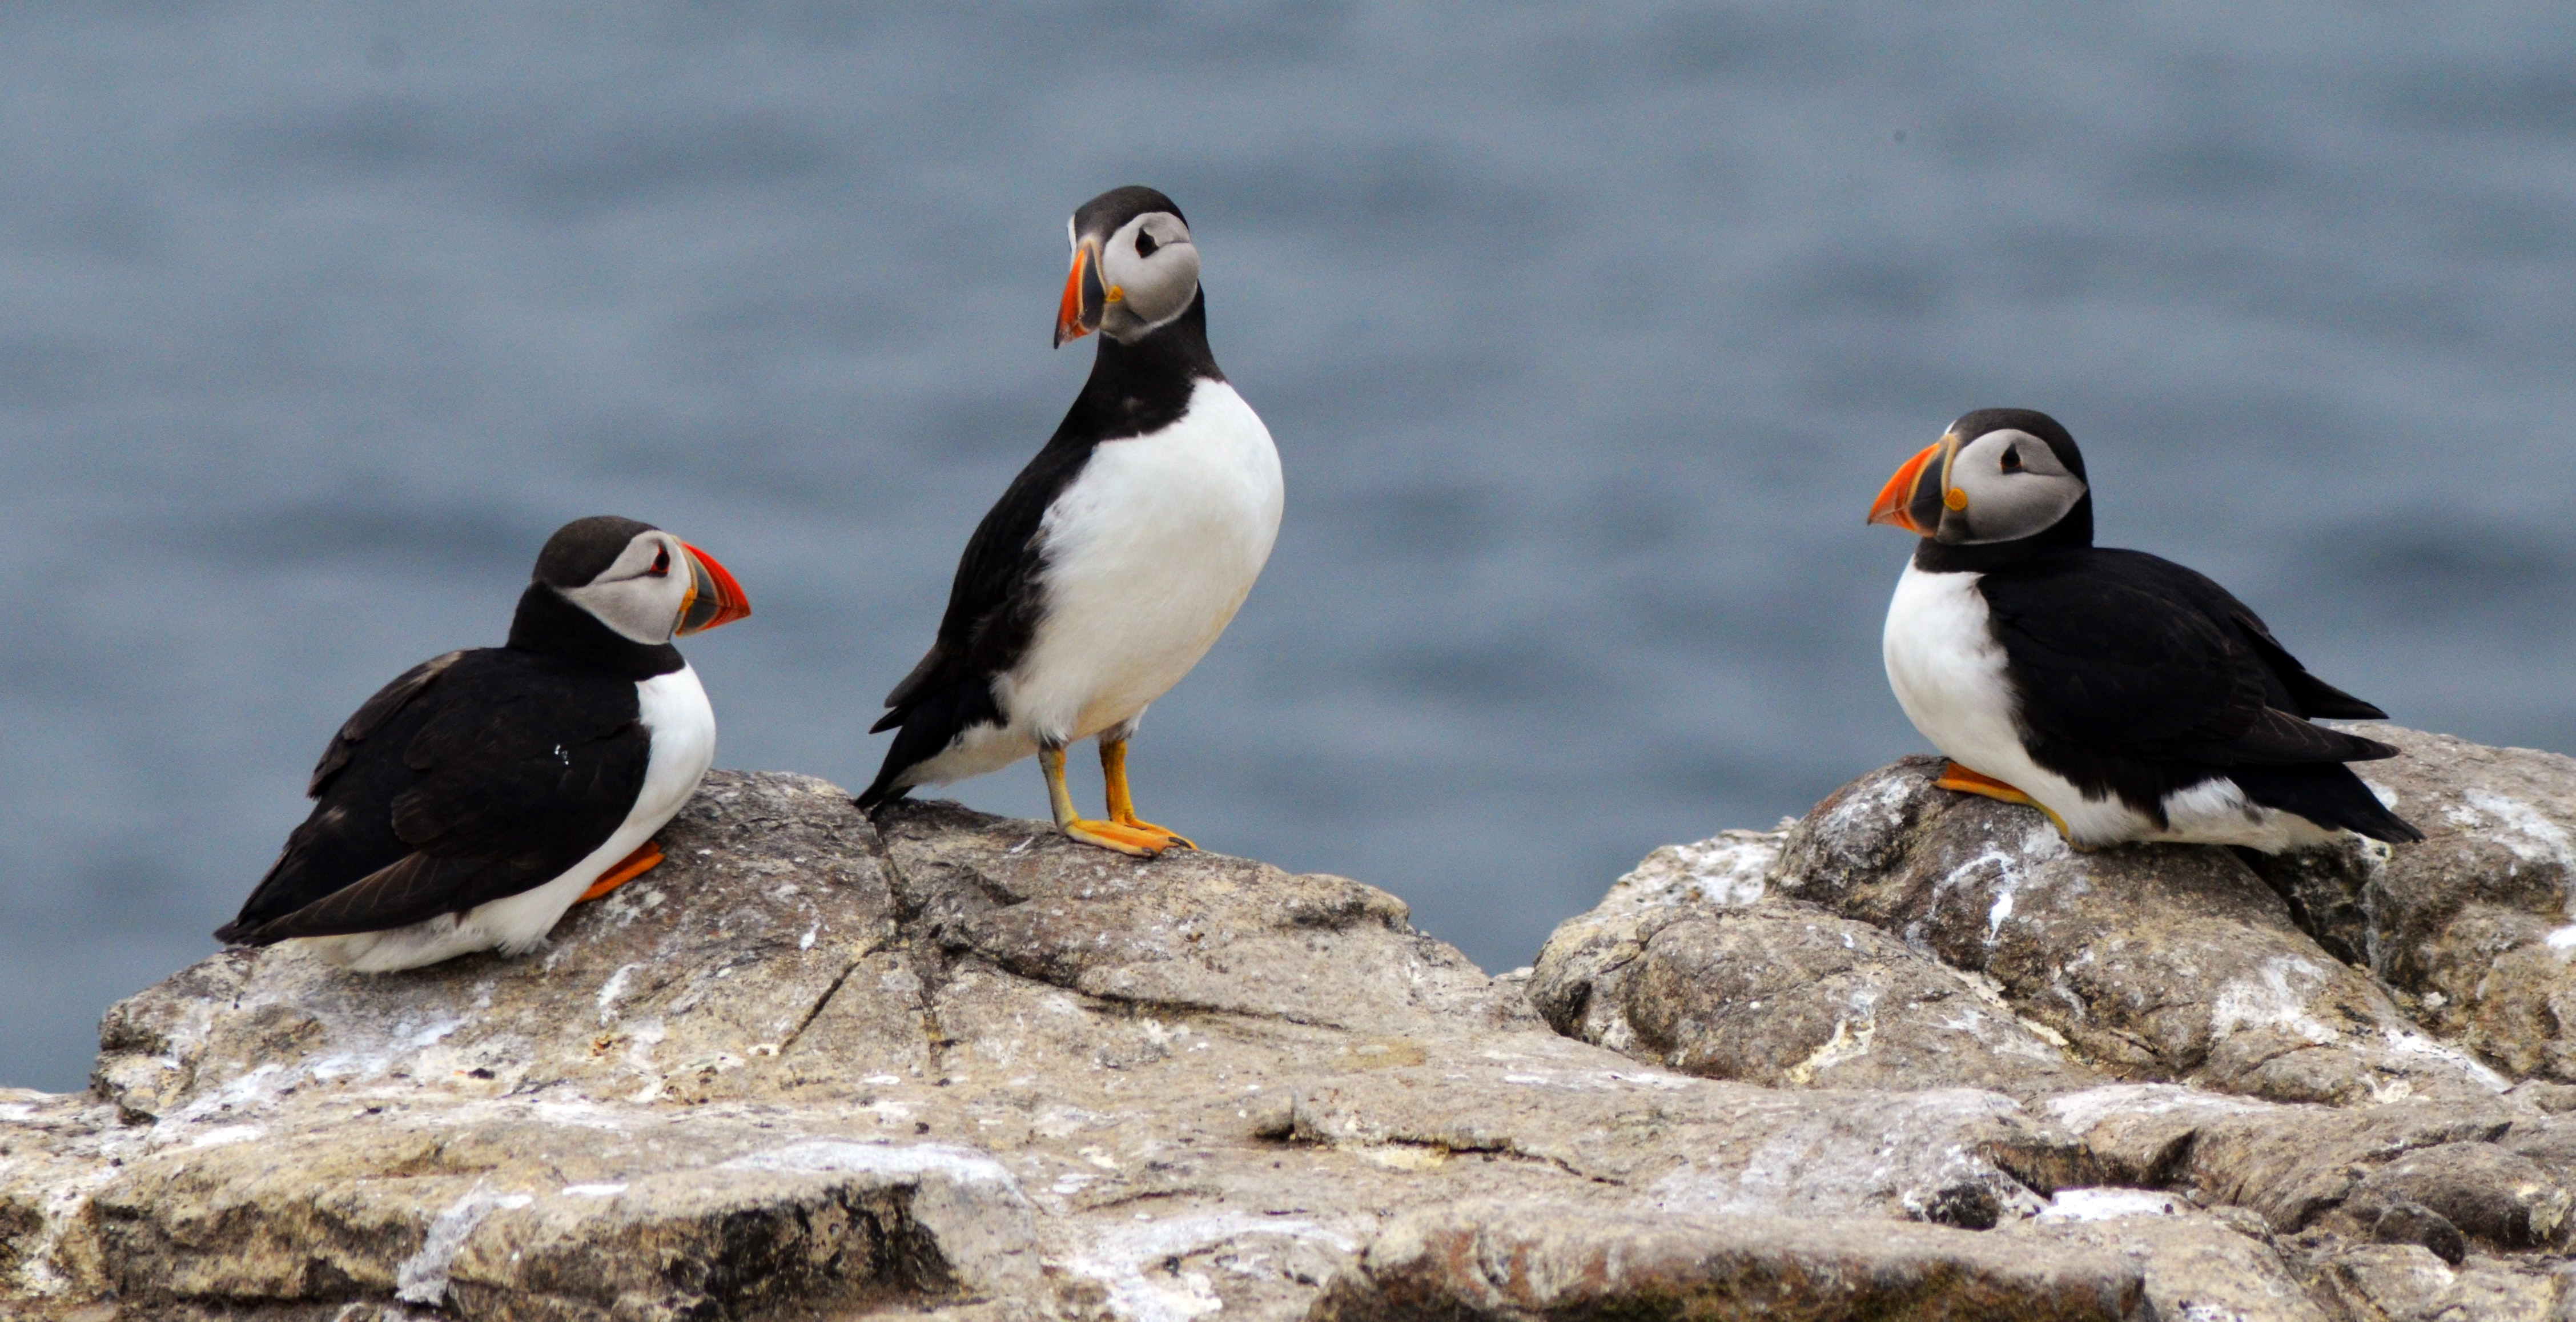 Puffins looking like they're talking to each other